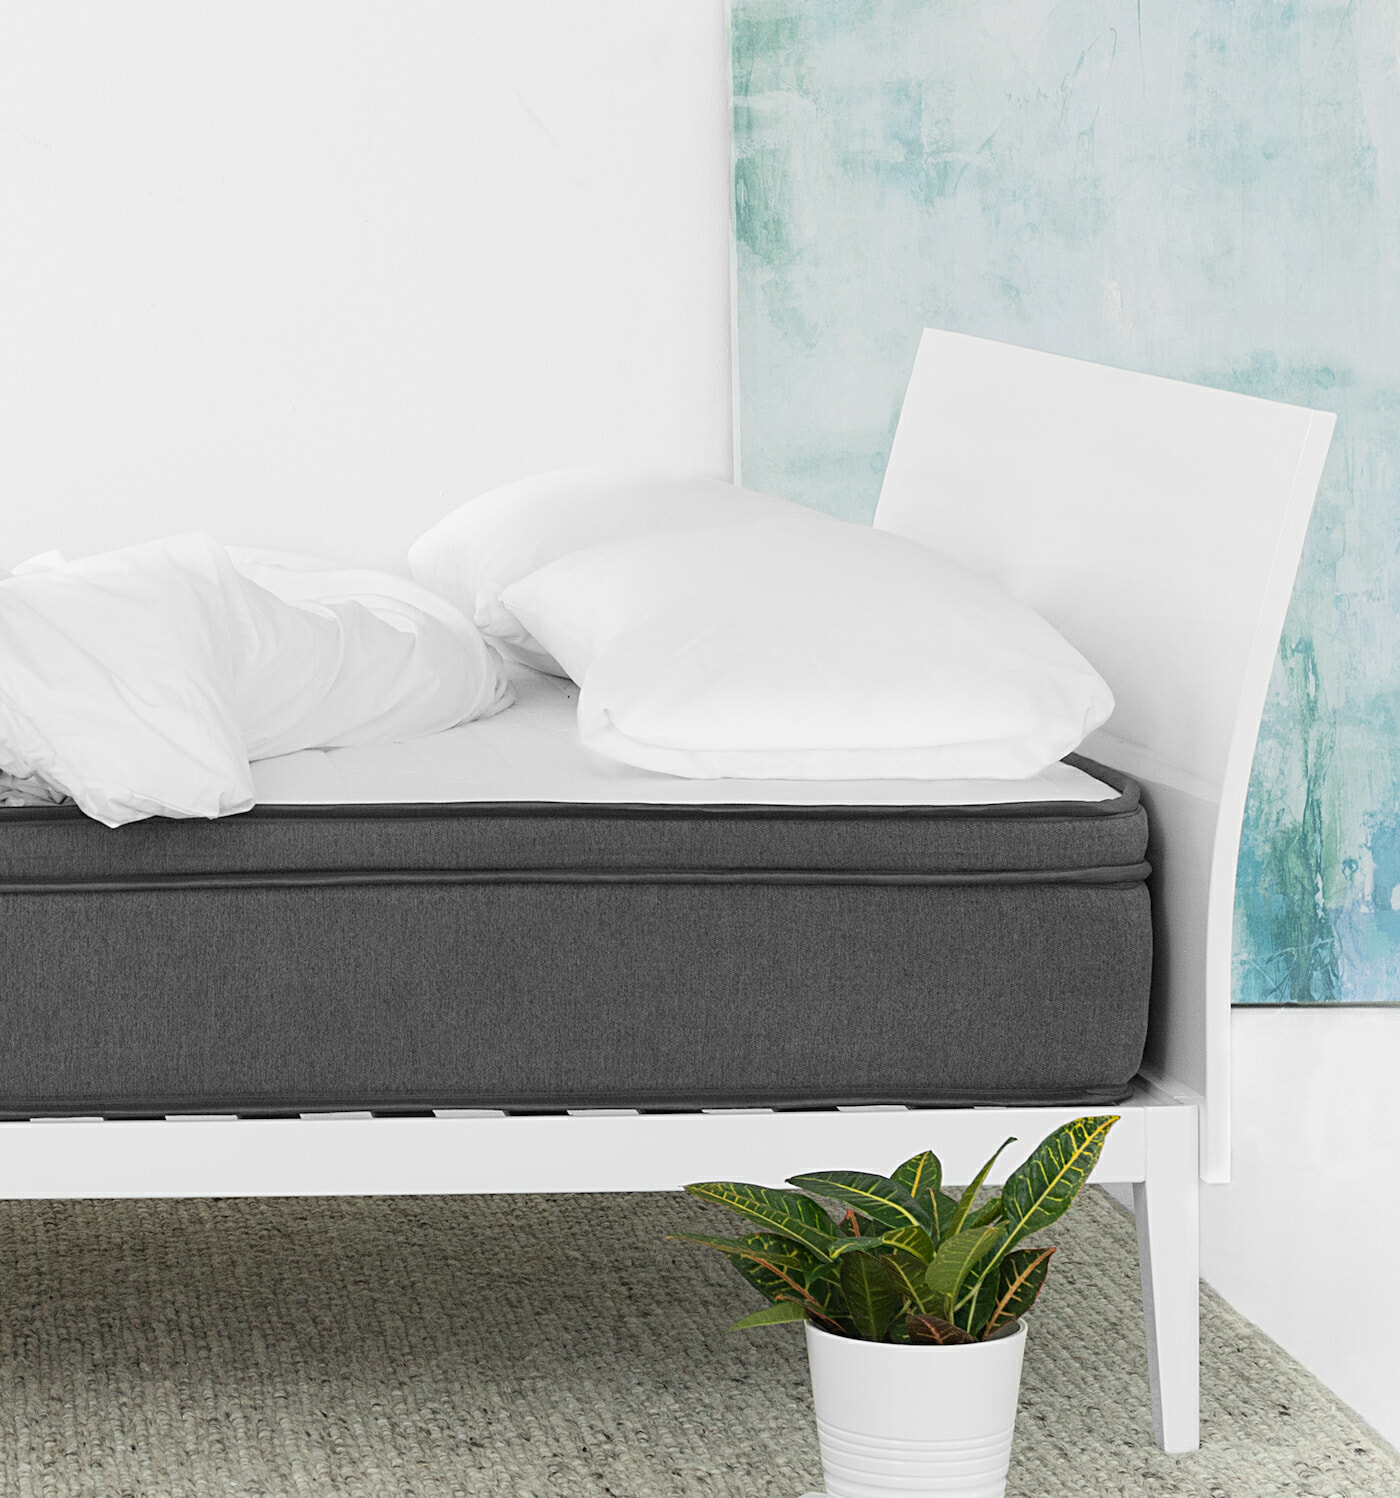 Noa Sunrise bed